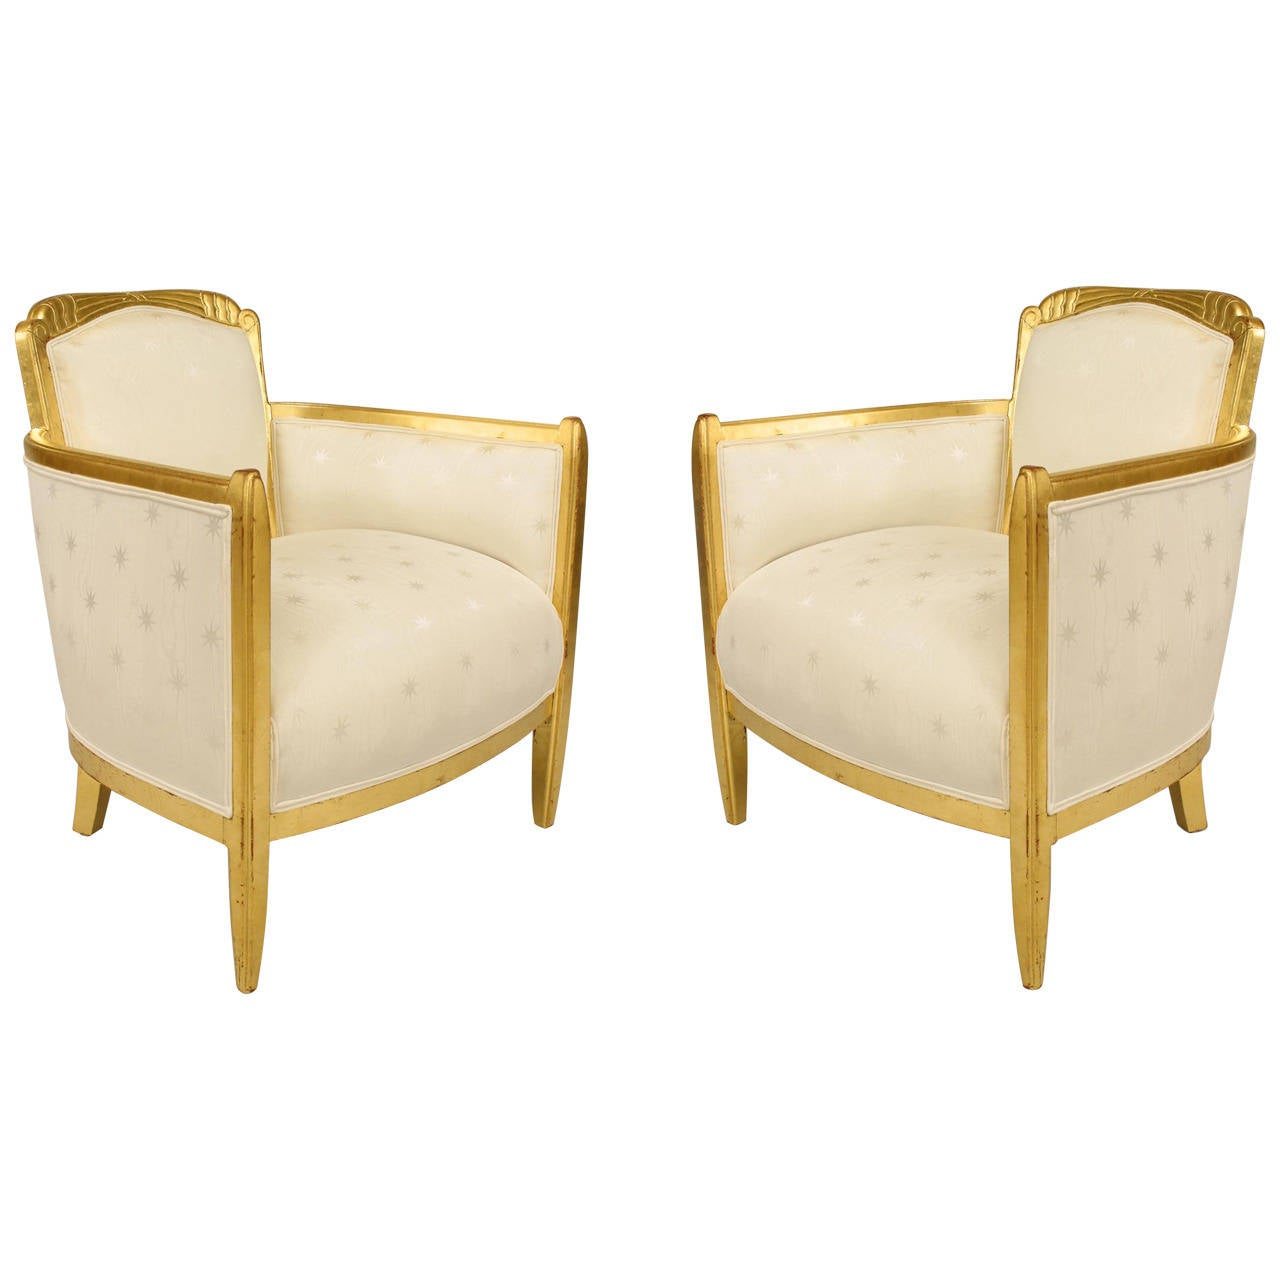 French Art Deco Three-Piece Upholstered Giltwood Salon Set